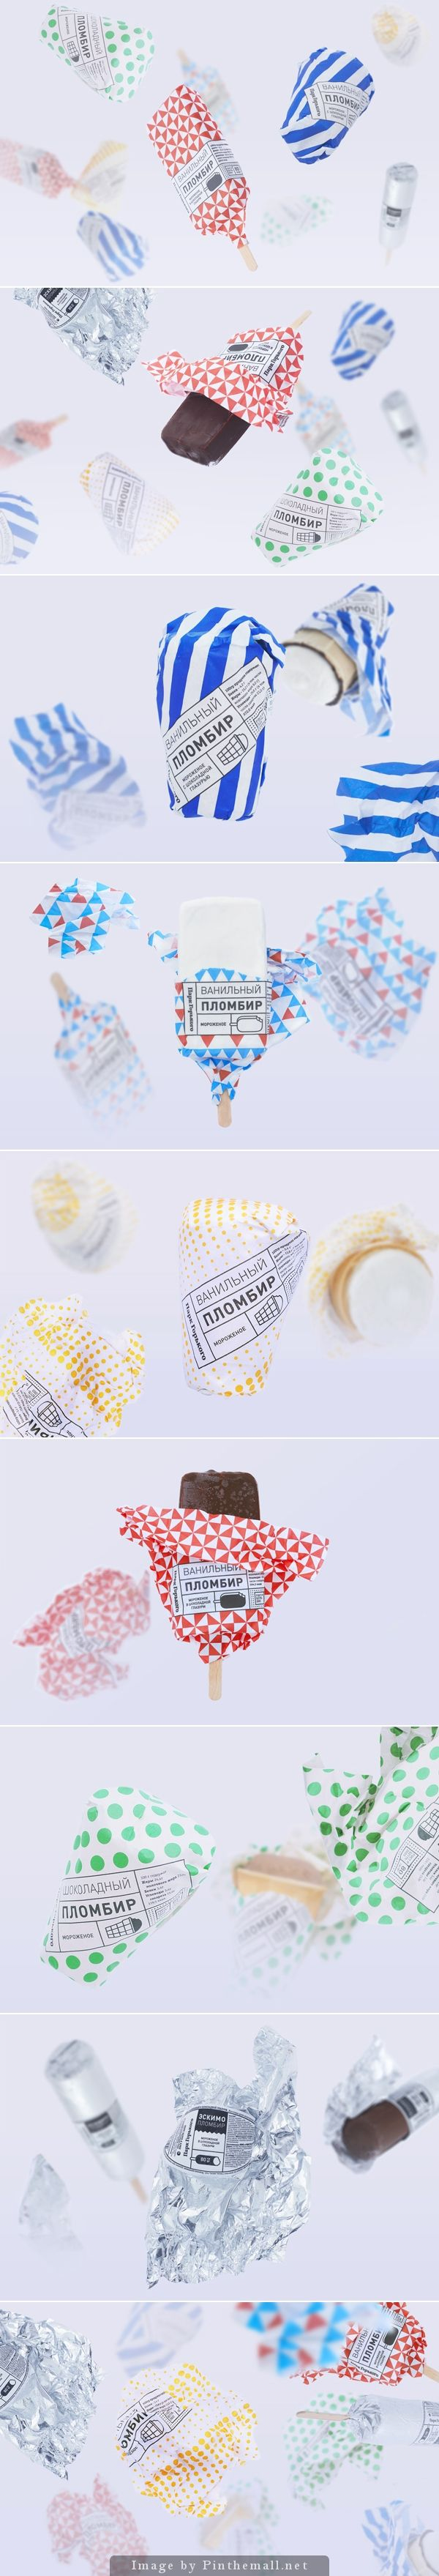 Gorky Park Icecream by Anastasia Genkina